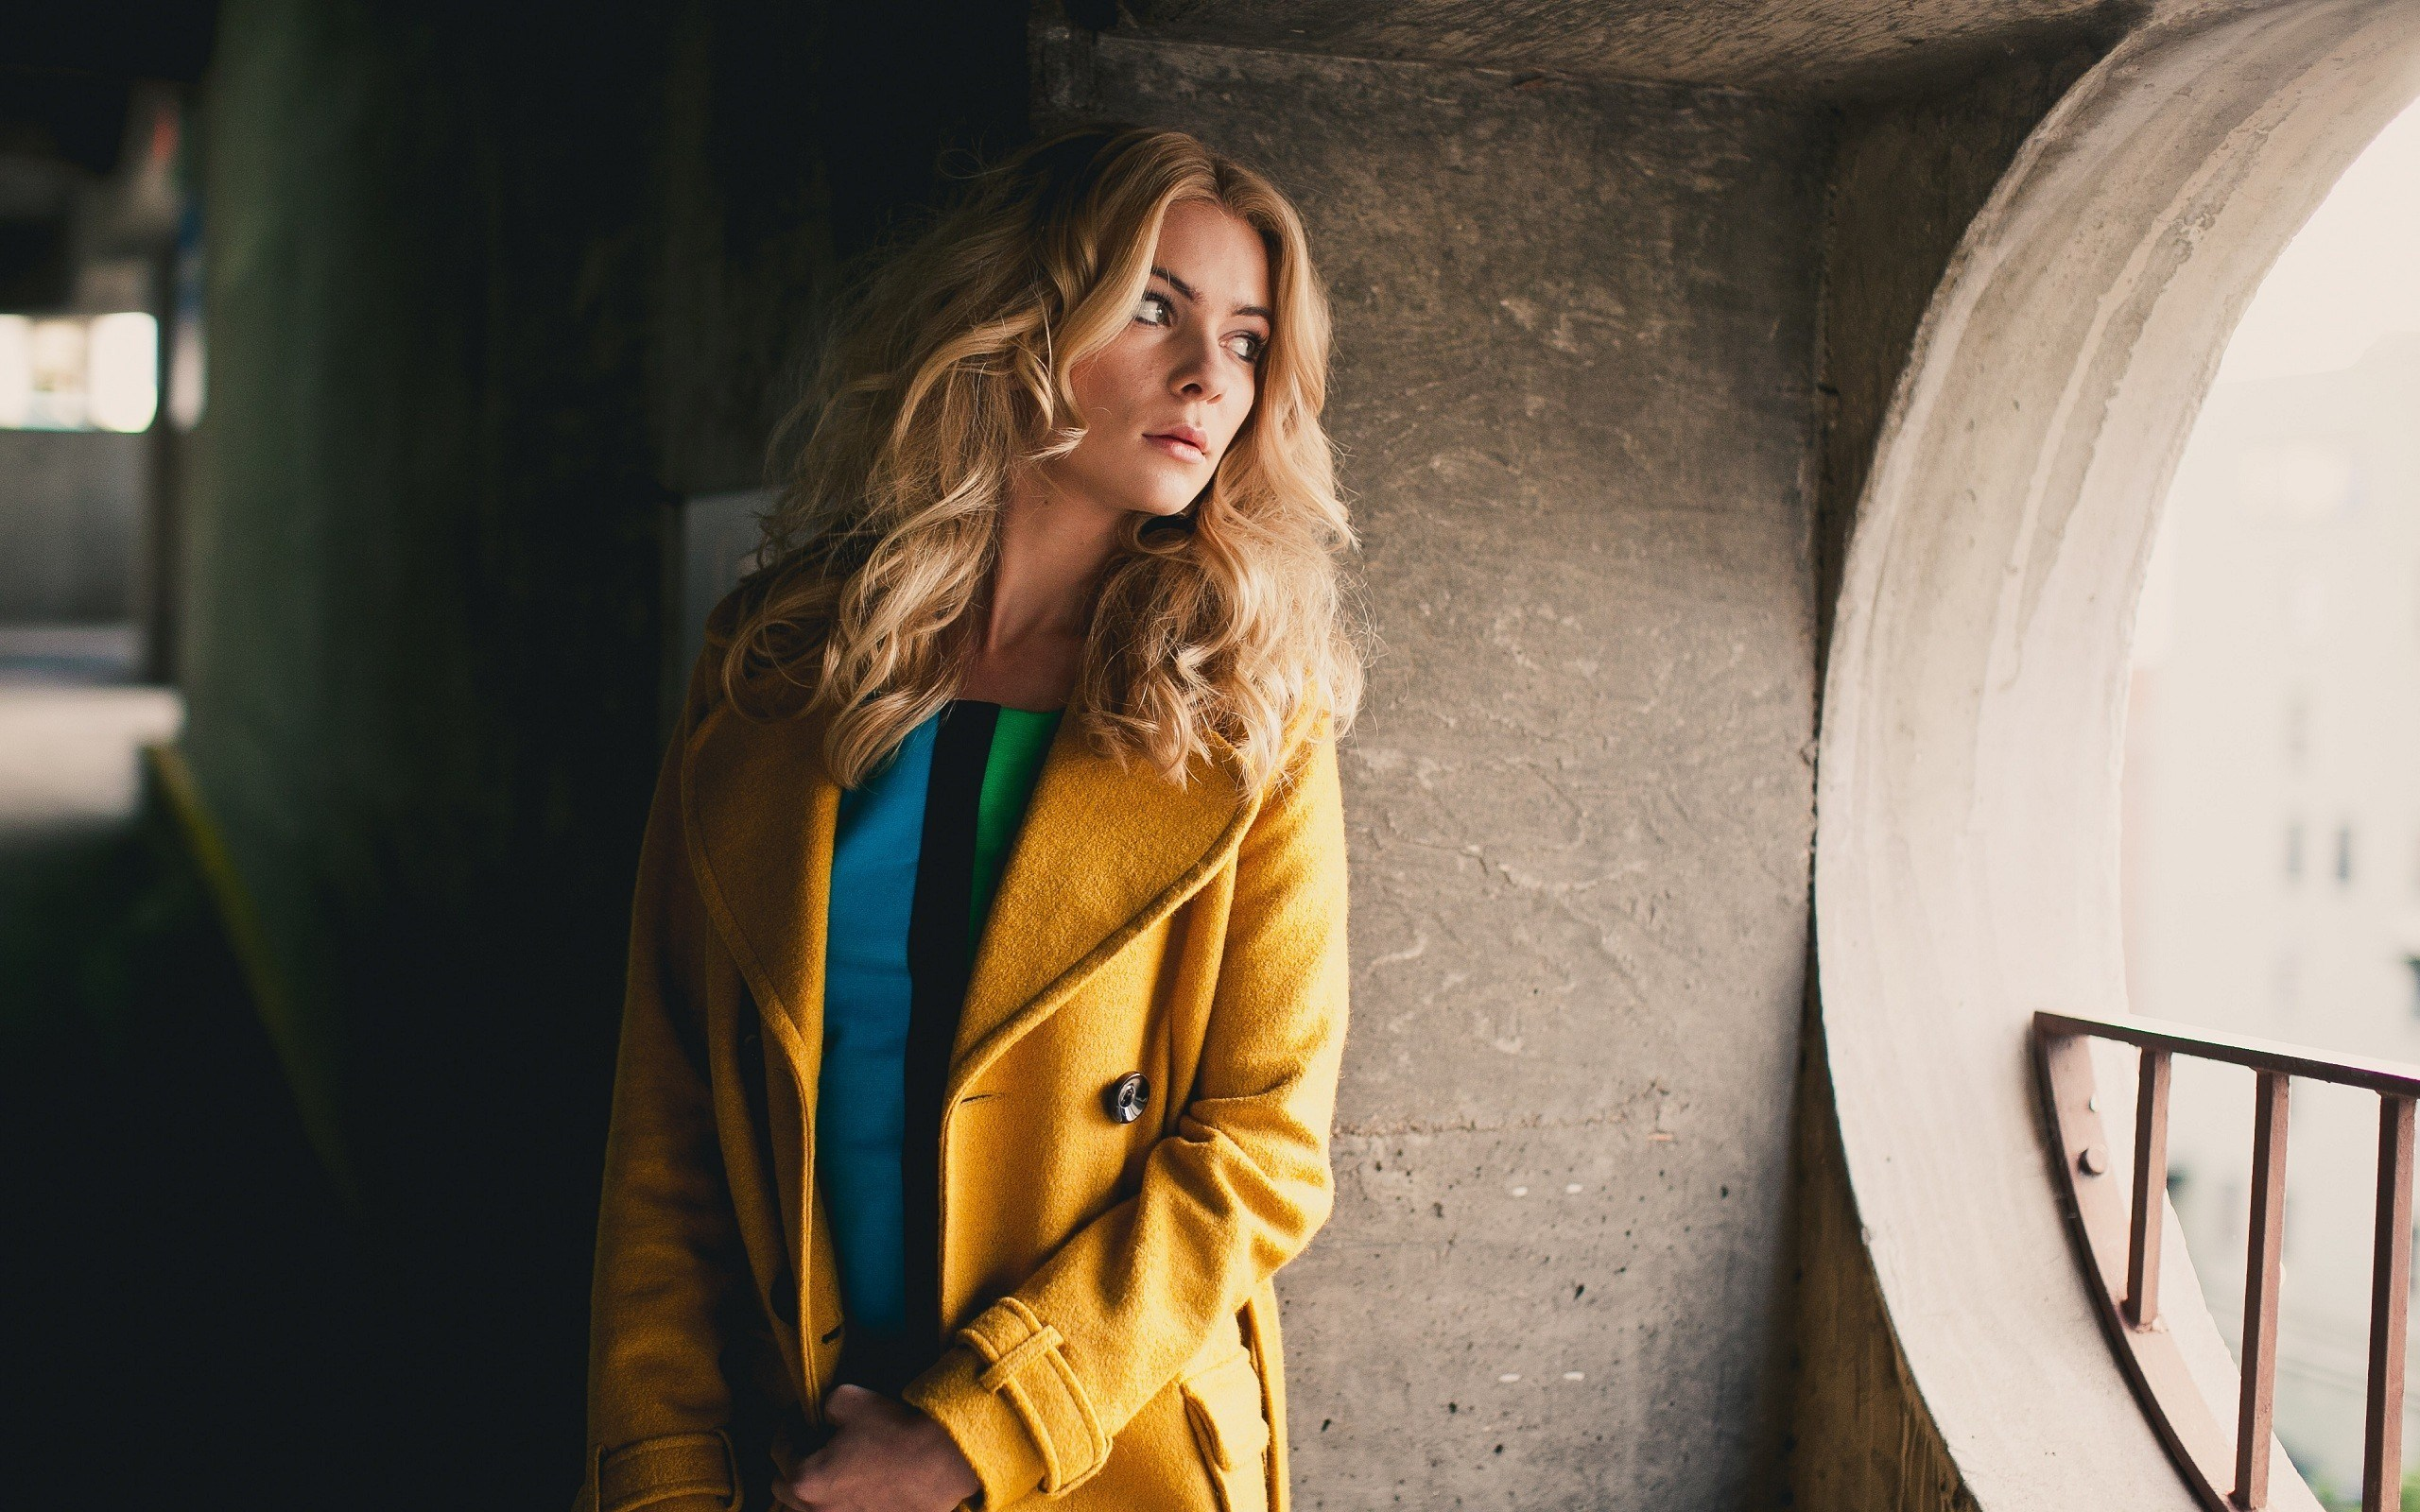 Alexis Coons Blonde Girl Fashion